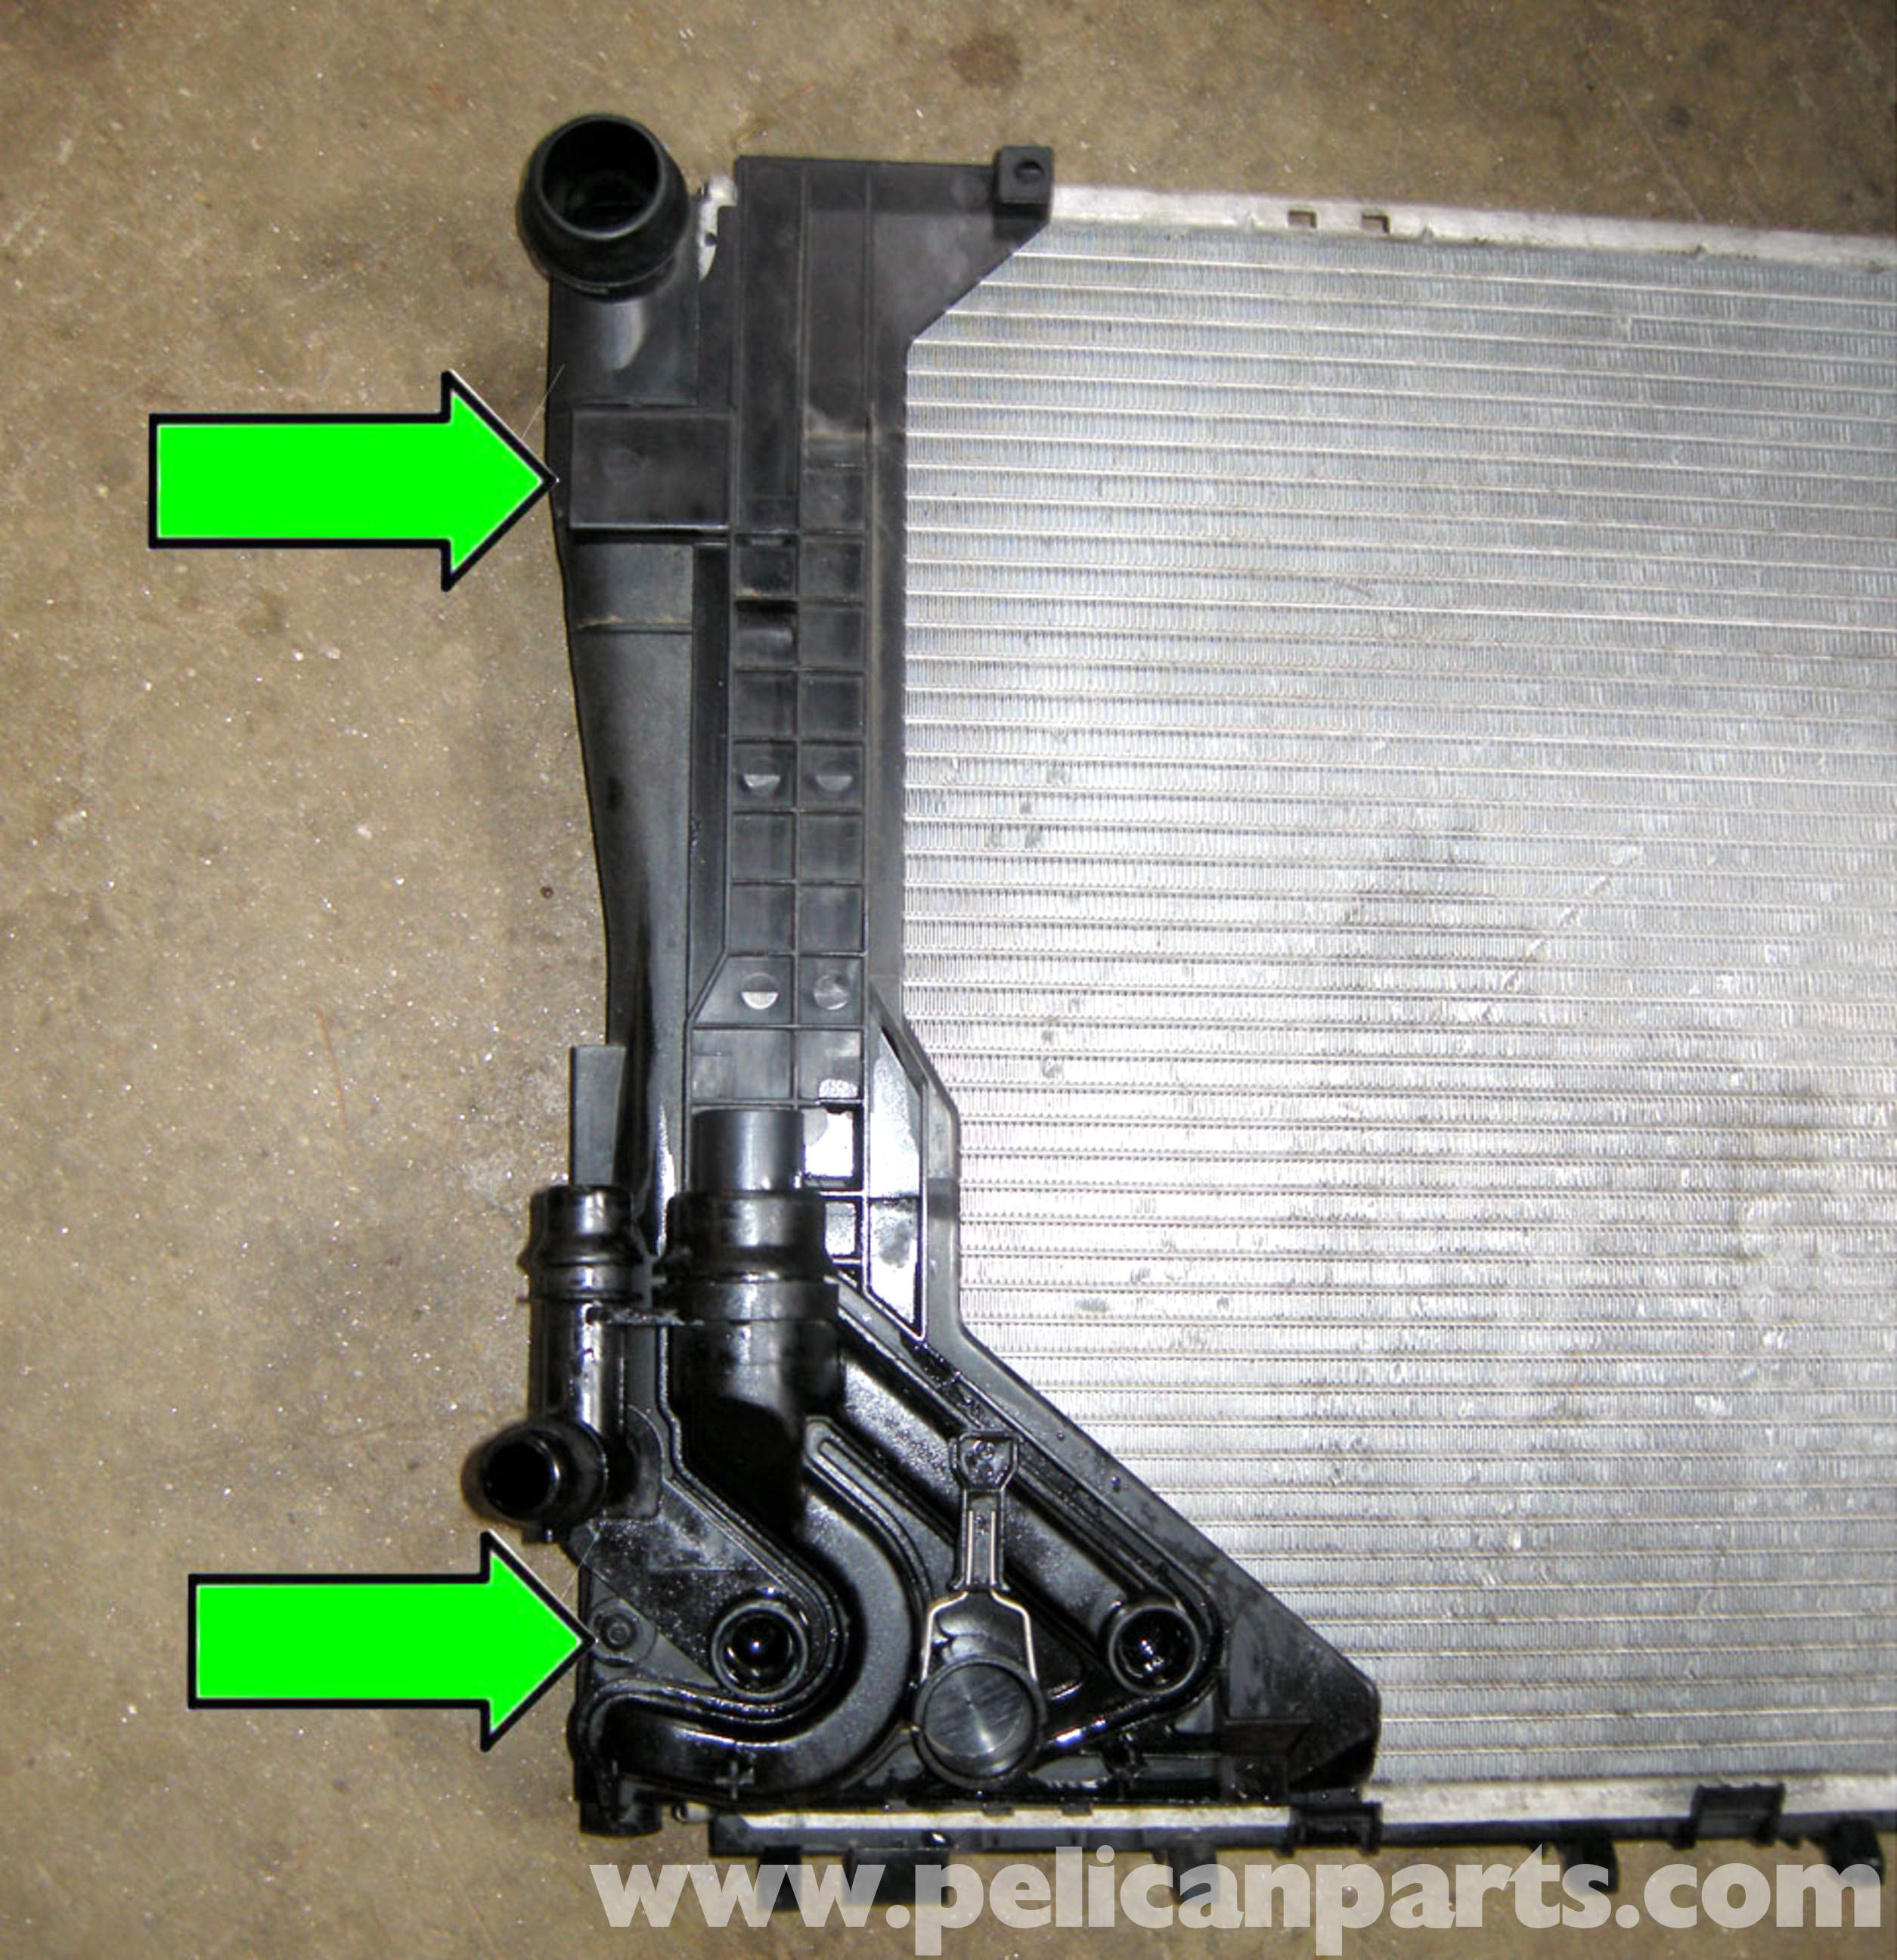 Bmw e46 radiator replacement bmw 325i 2001 2005 bmw 325xi 2001 large image extra large image swarovskicordoba Image collections